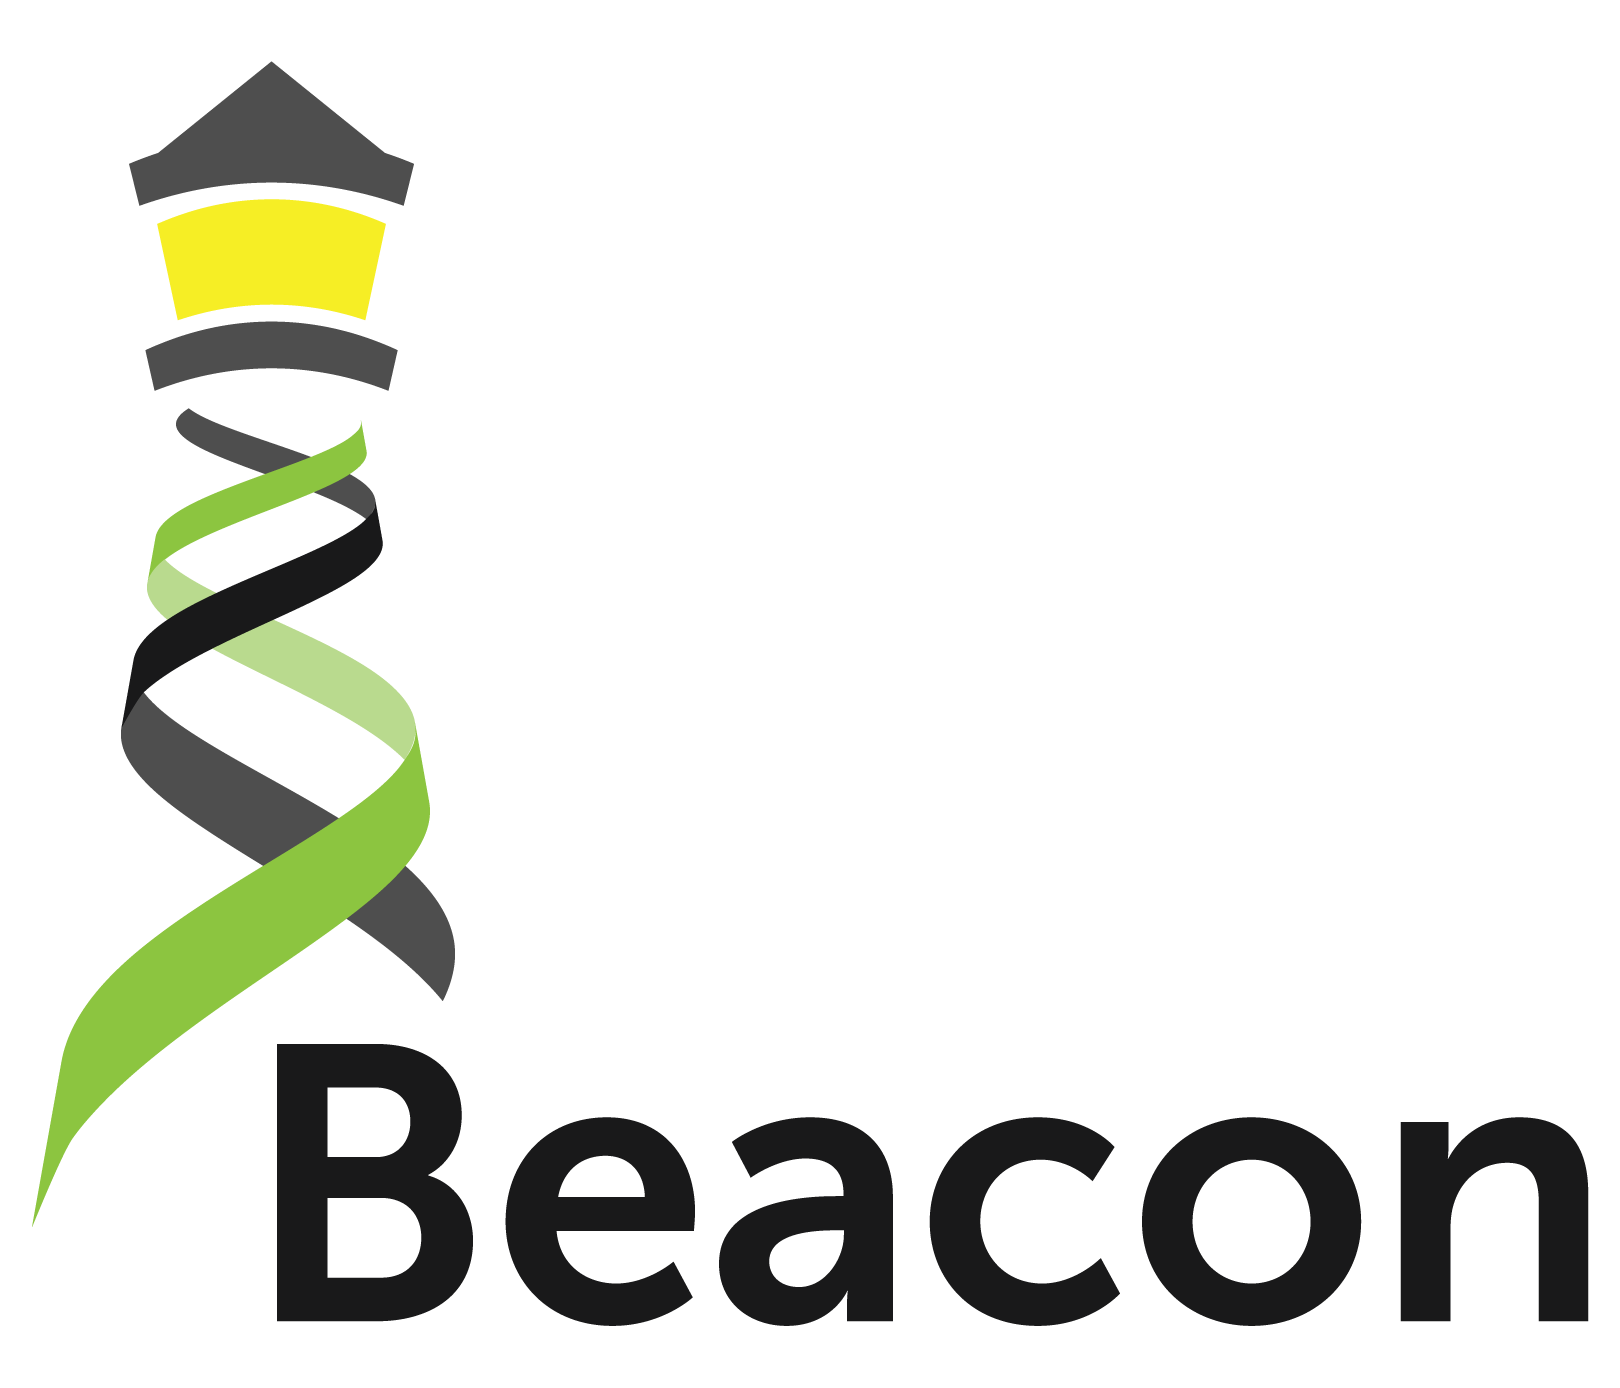 Beacon clipart our world Alliance Health for Project Global